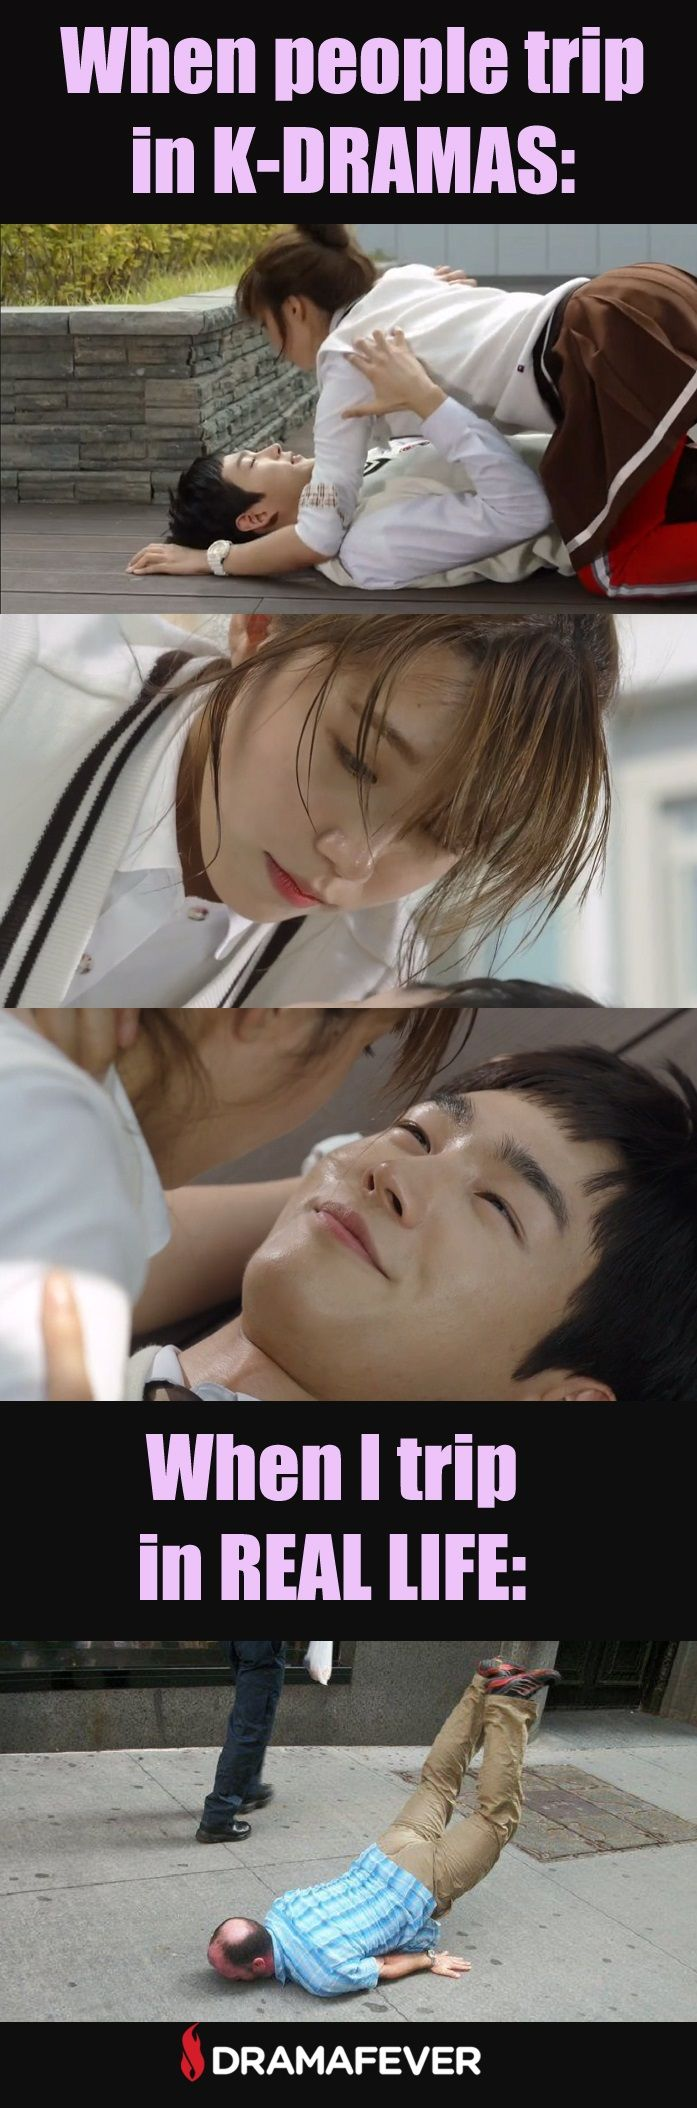 If only life were like a K-drama...Watch Eunji and Lee Won Geun in the cute series Cheer Up on DramaFever!